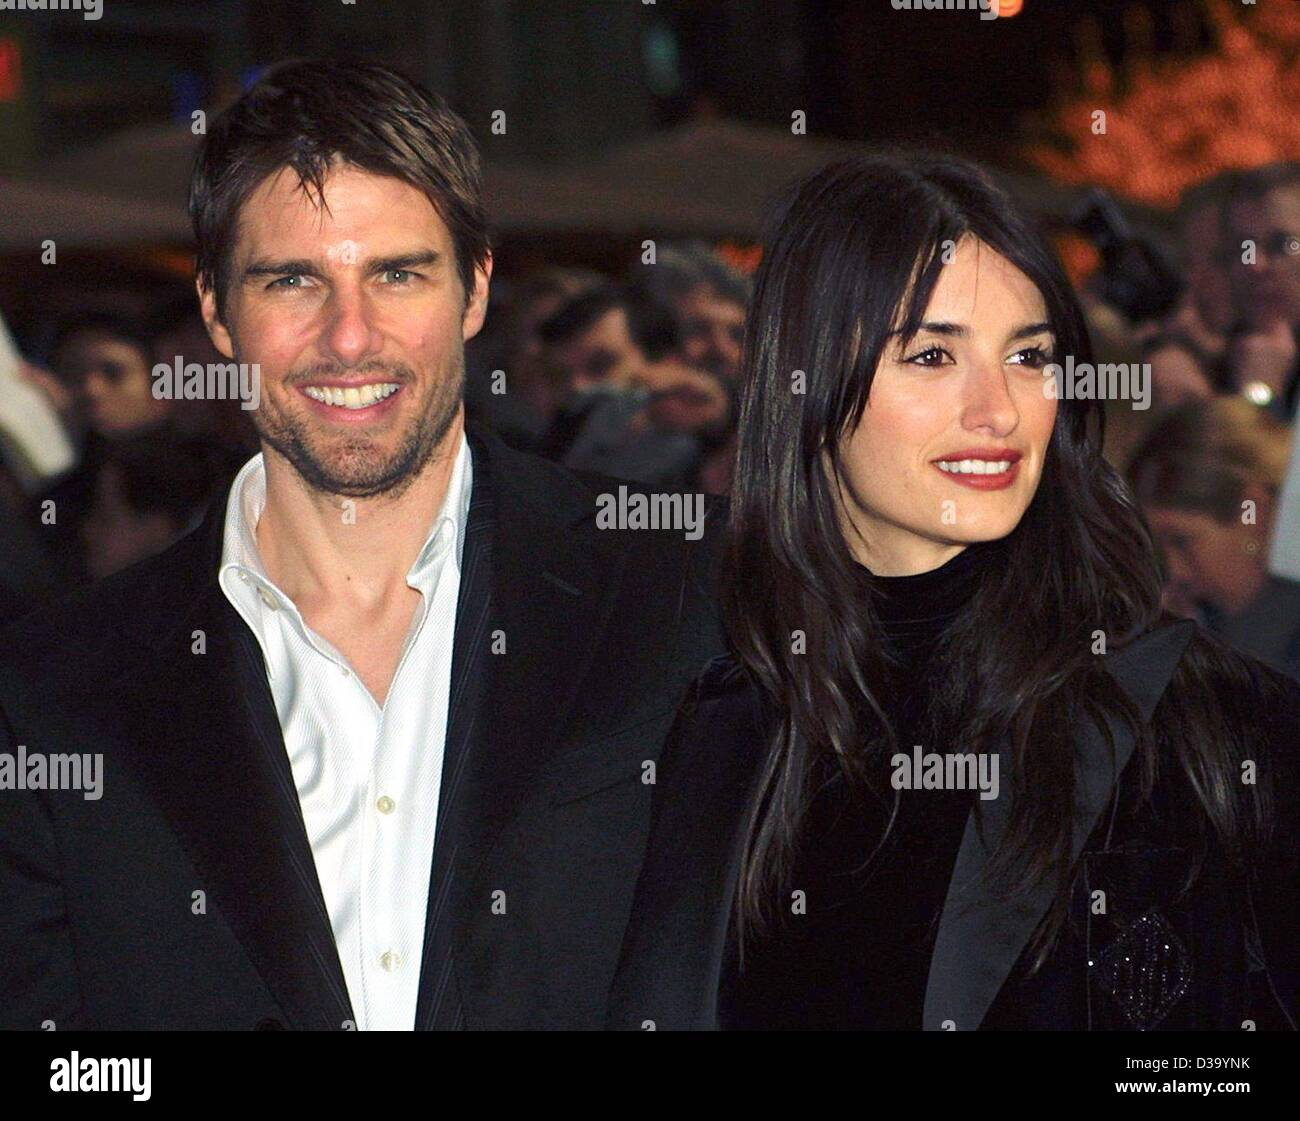 Tom Cruise Girlfriend 2020.Tom Cruise And His Girlfriend Stock Photos Tom Cruise And